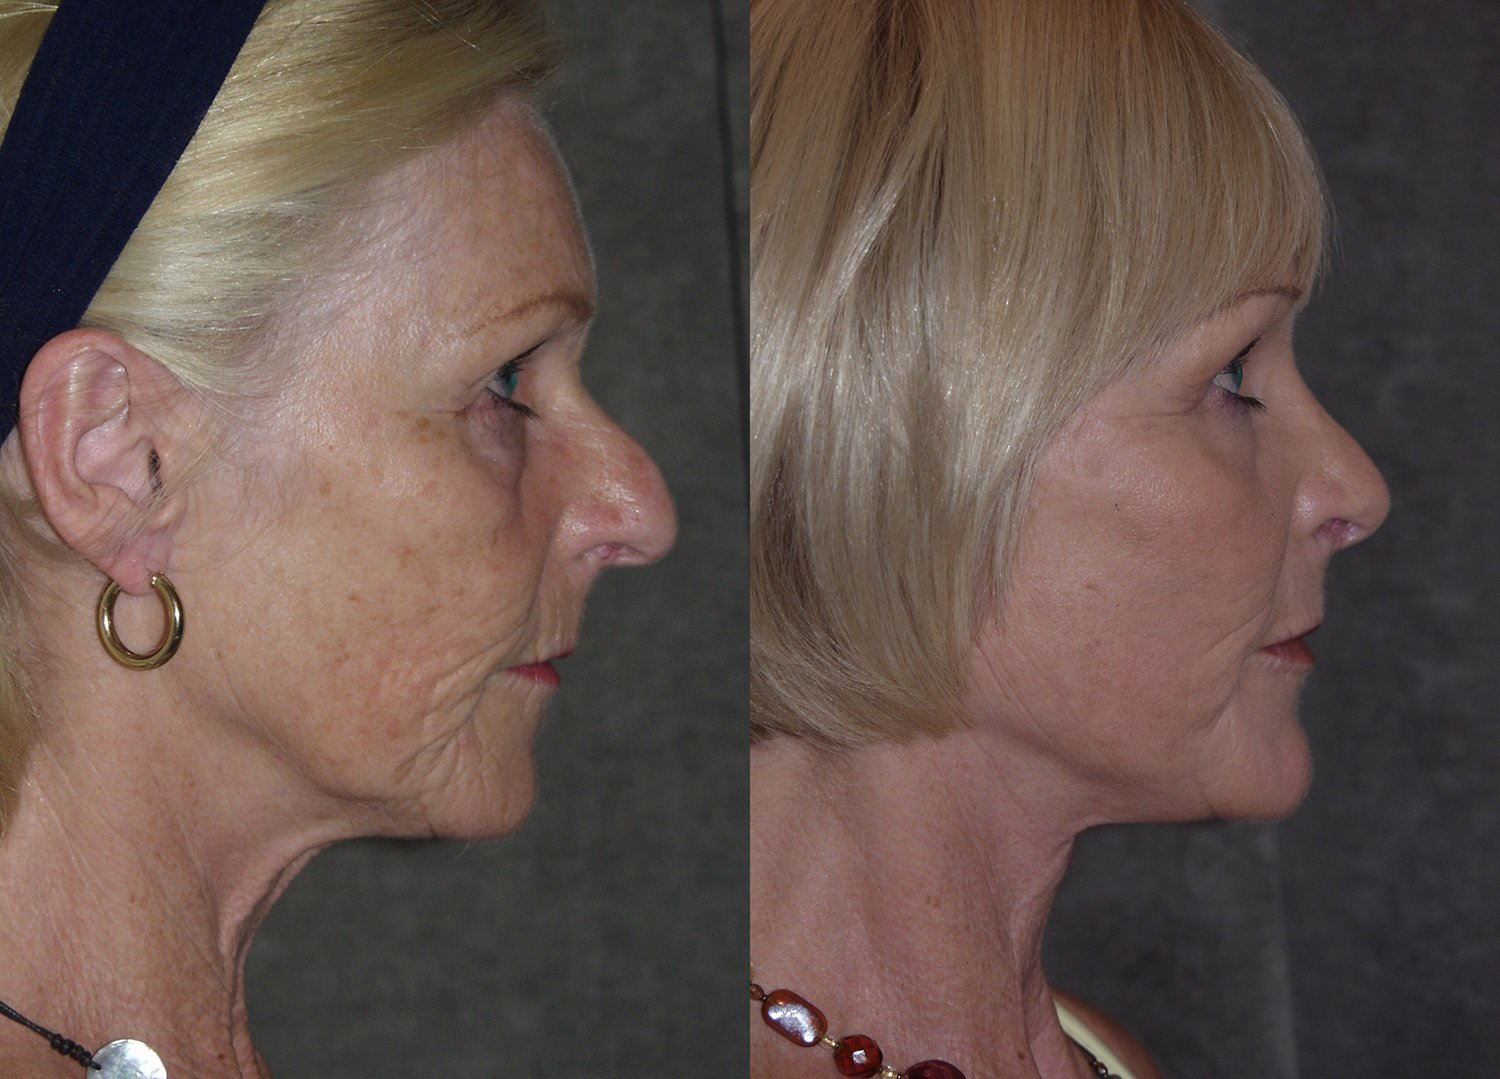 60-year-old facelift upper & lower eyelids, chin implant, rhinoplasty, peel lower eyelids & perioral, 4 months side